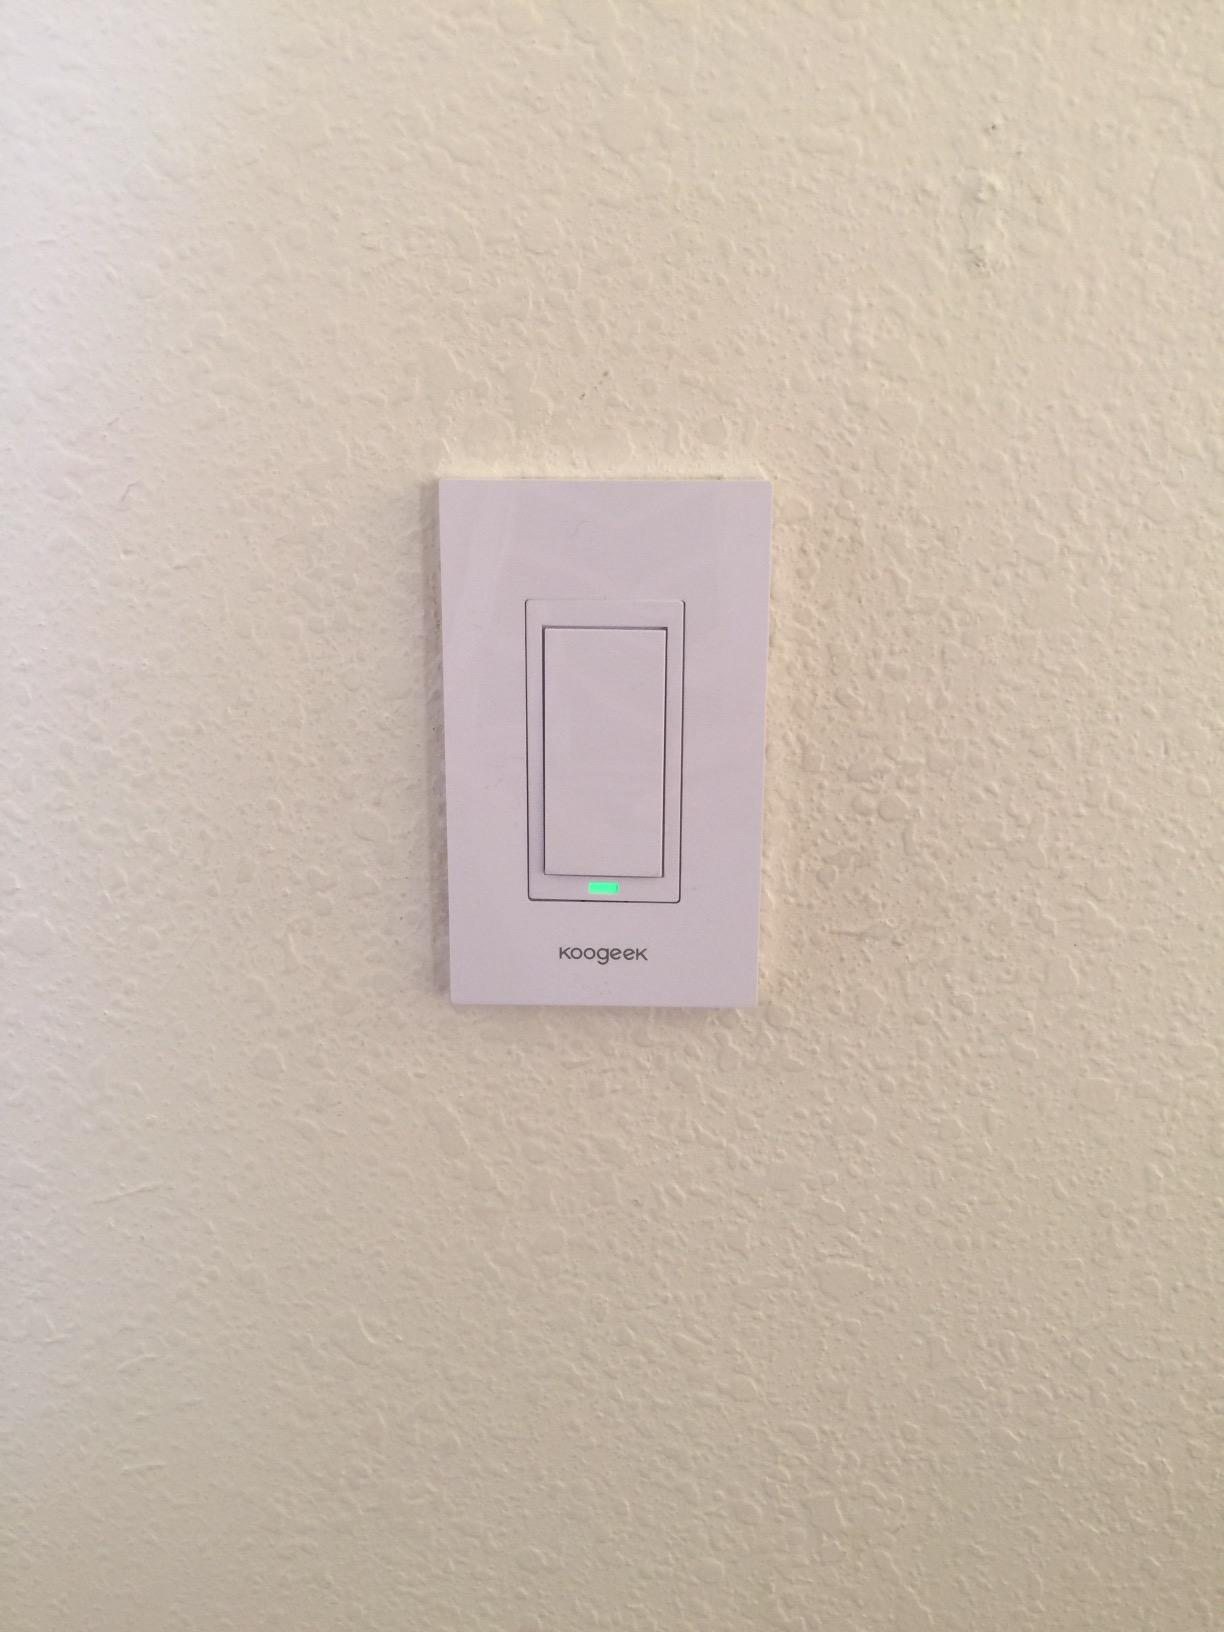 Two Gang Wi Fi Enabled Smart Light Switch Turns On Off The And One 2way That Fan I Am Now Able To My From Phones Dont Have Come Back Into House When Kids Forget Turn